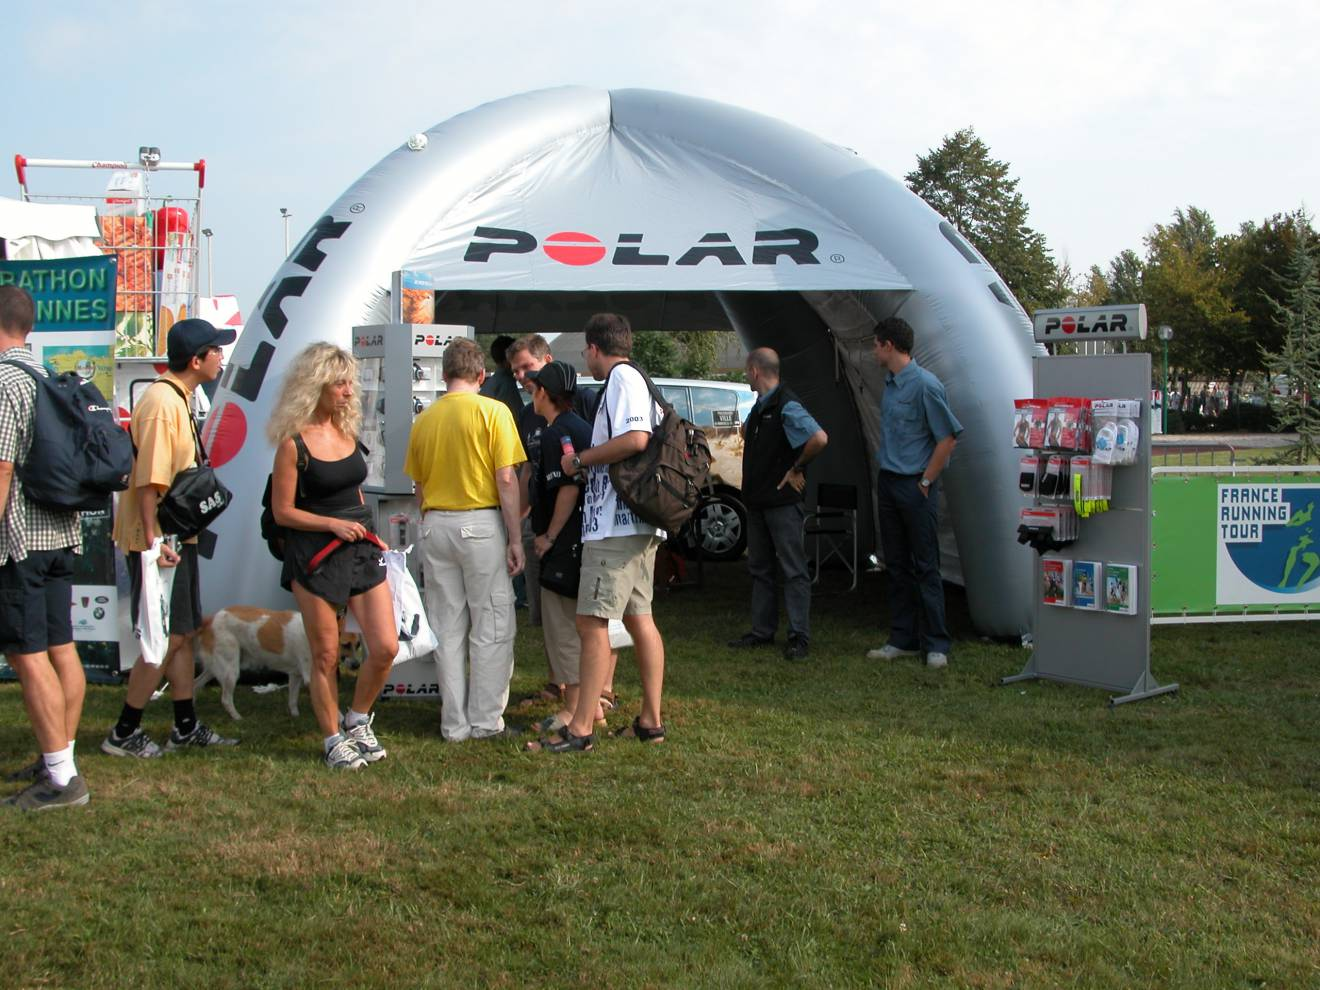 Tents Giant inflatable tents X-Treme Creations & Giant inflatable tents: a roof above your head in no time